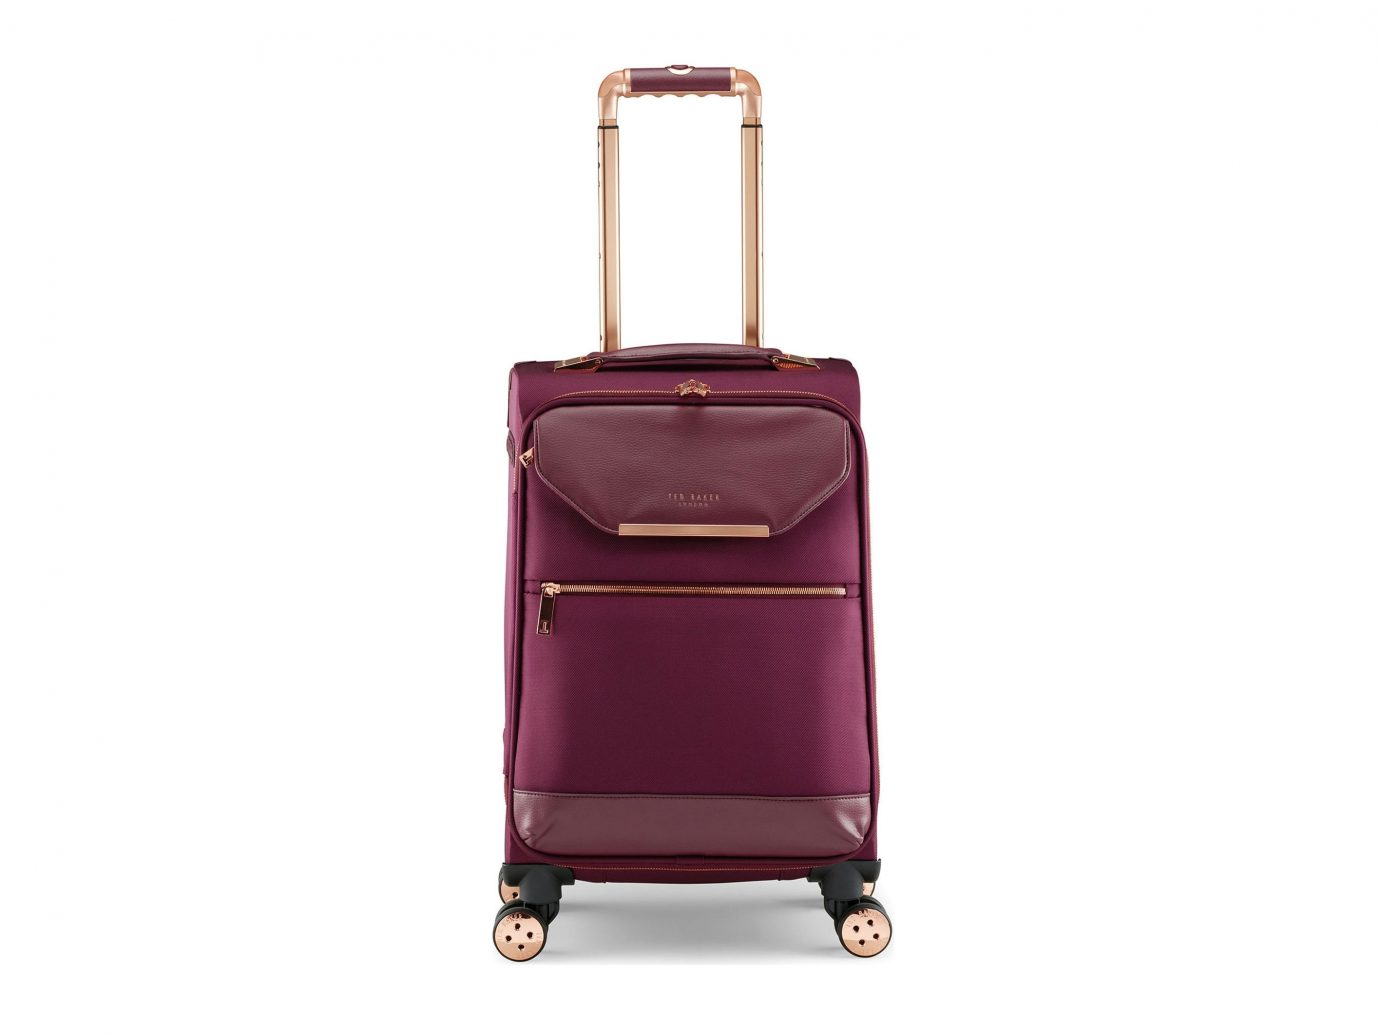 Ted Baker London 22-Inch Spinner Trolley Packing Case